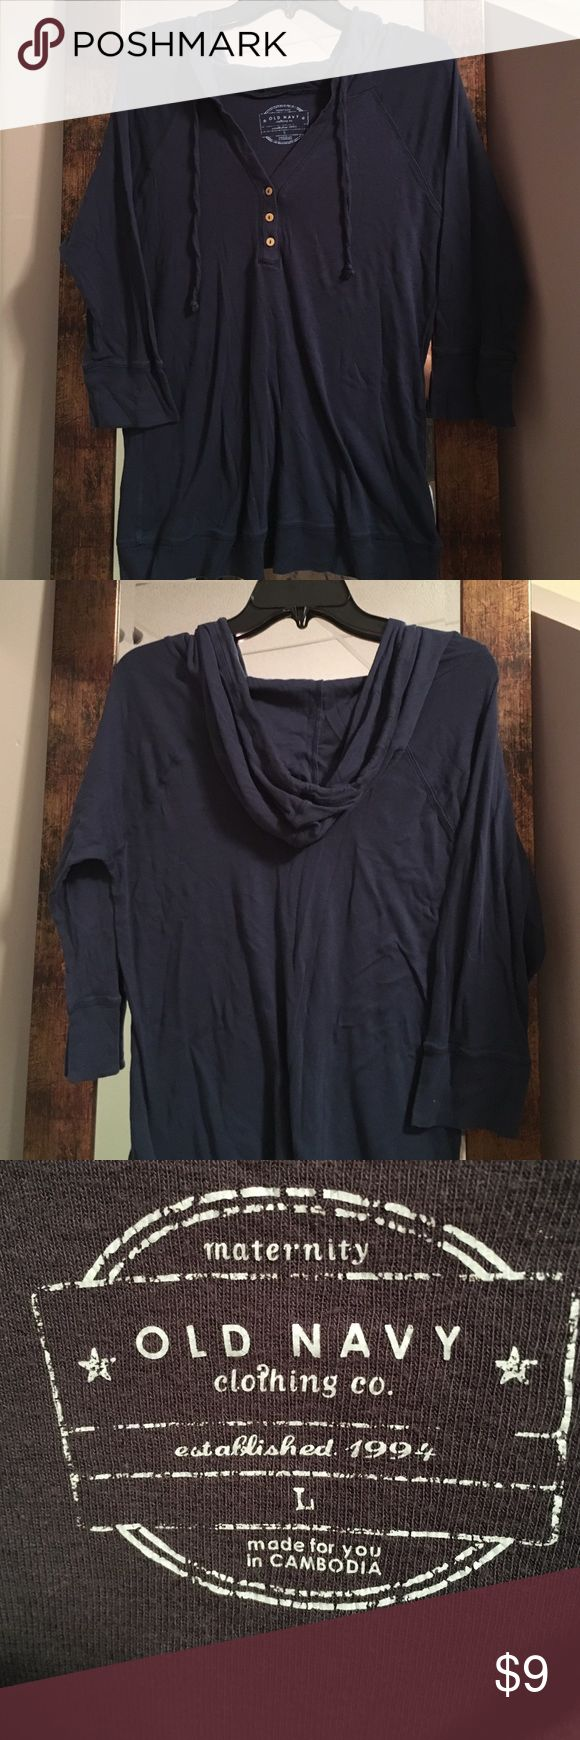 OLD NAVY maternity size L hooded long sleeve tee OLD NAVY maternity size Large hooded long sleeve tee Old Navy Tops Tees - Long Sleeve